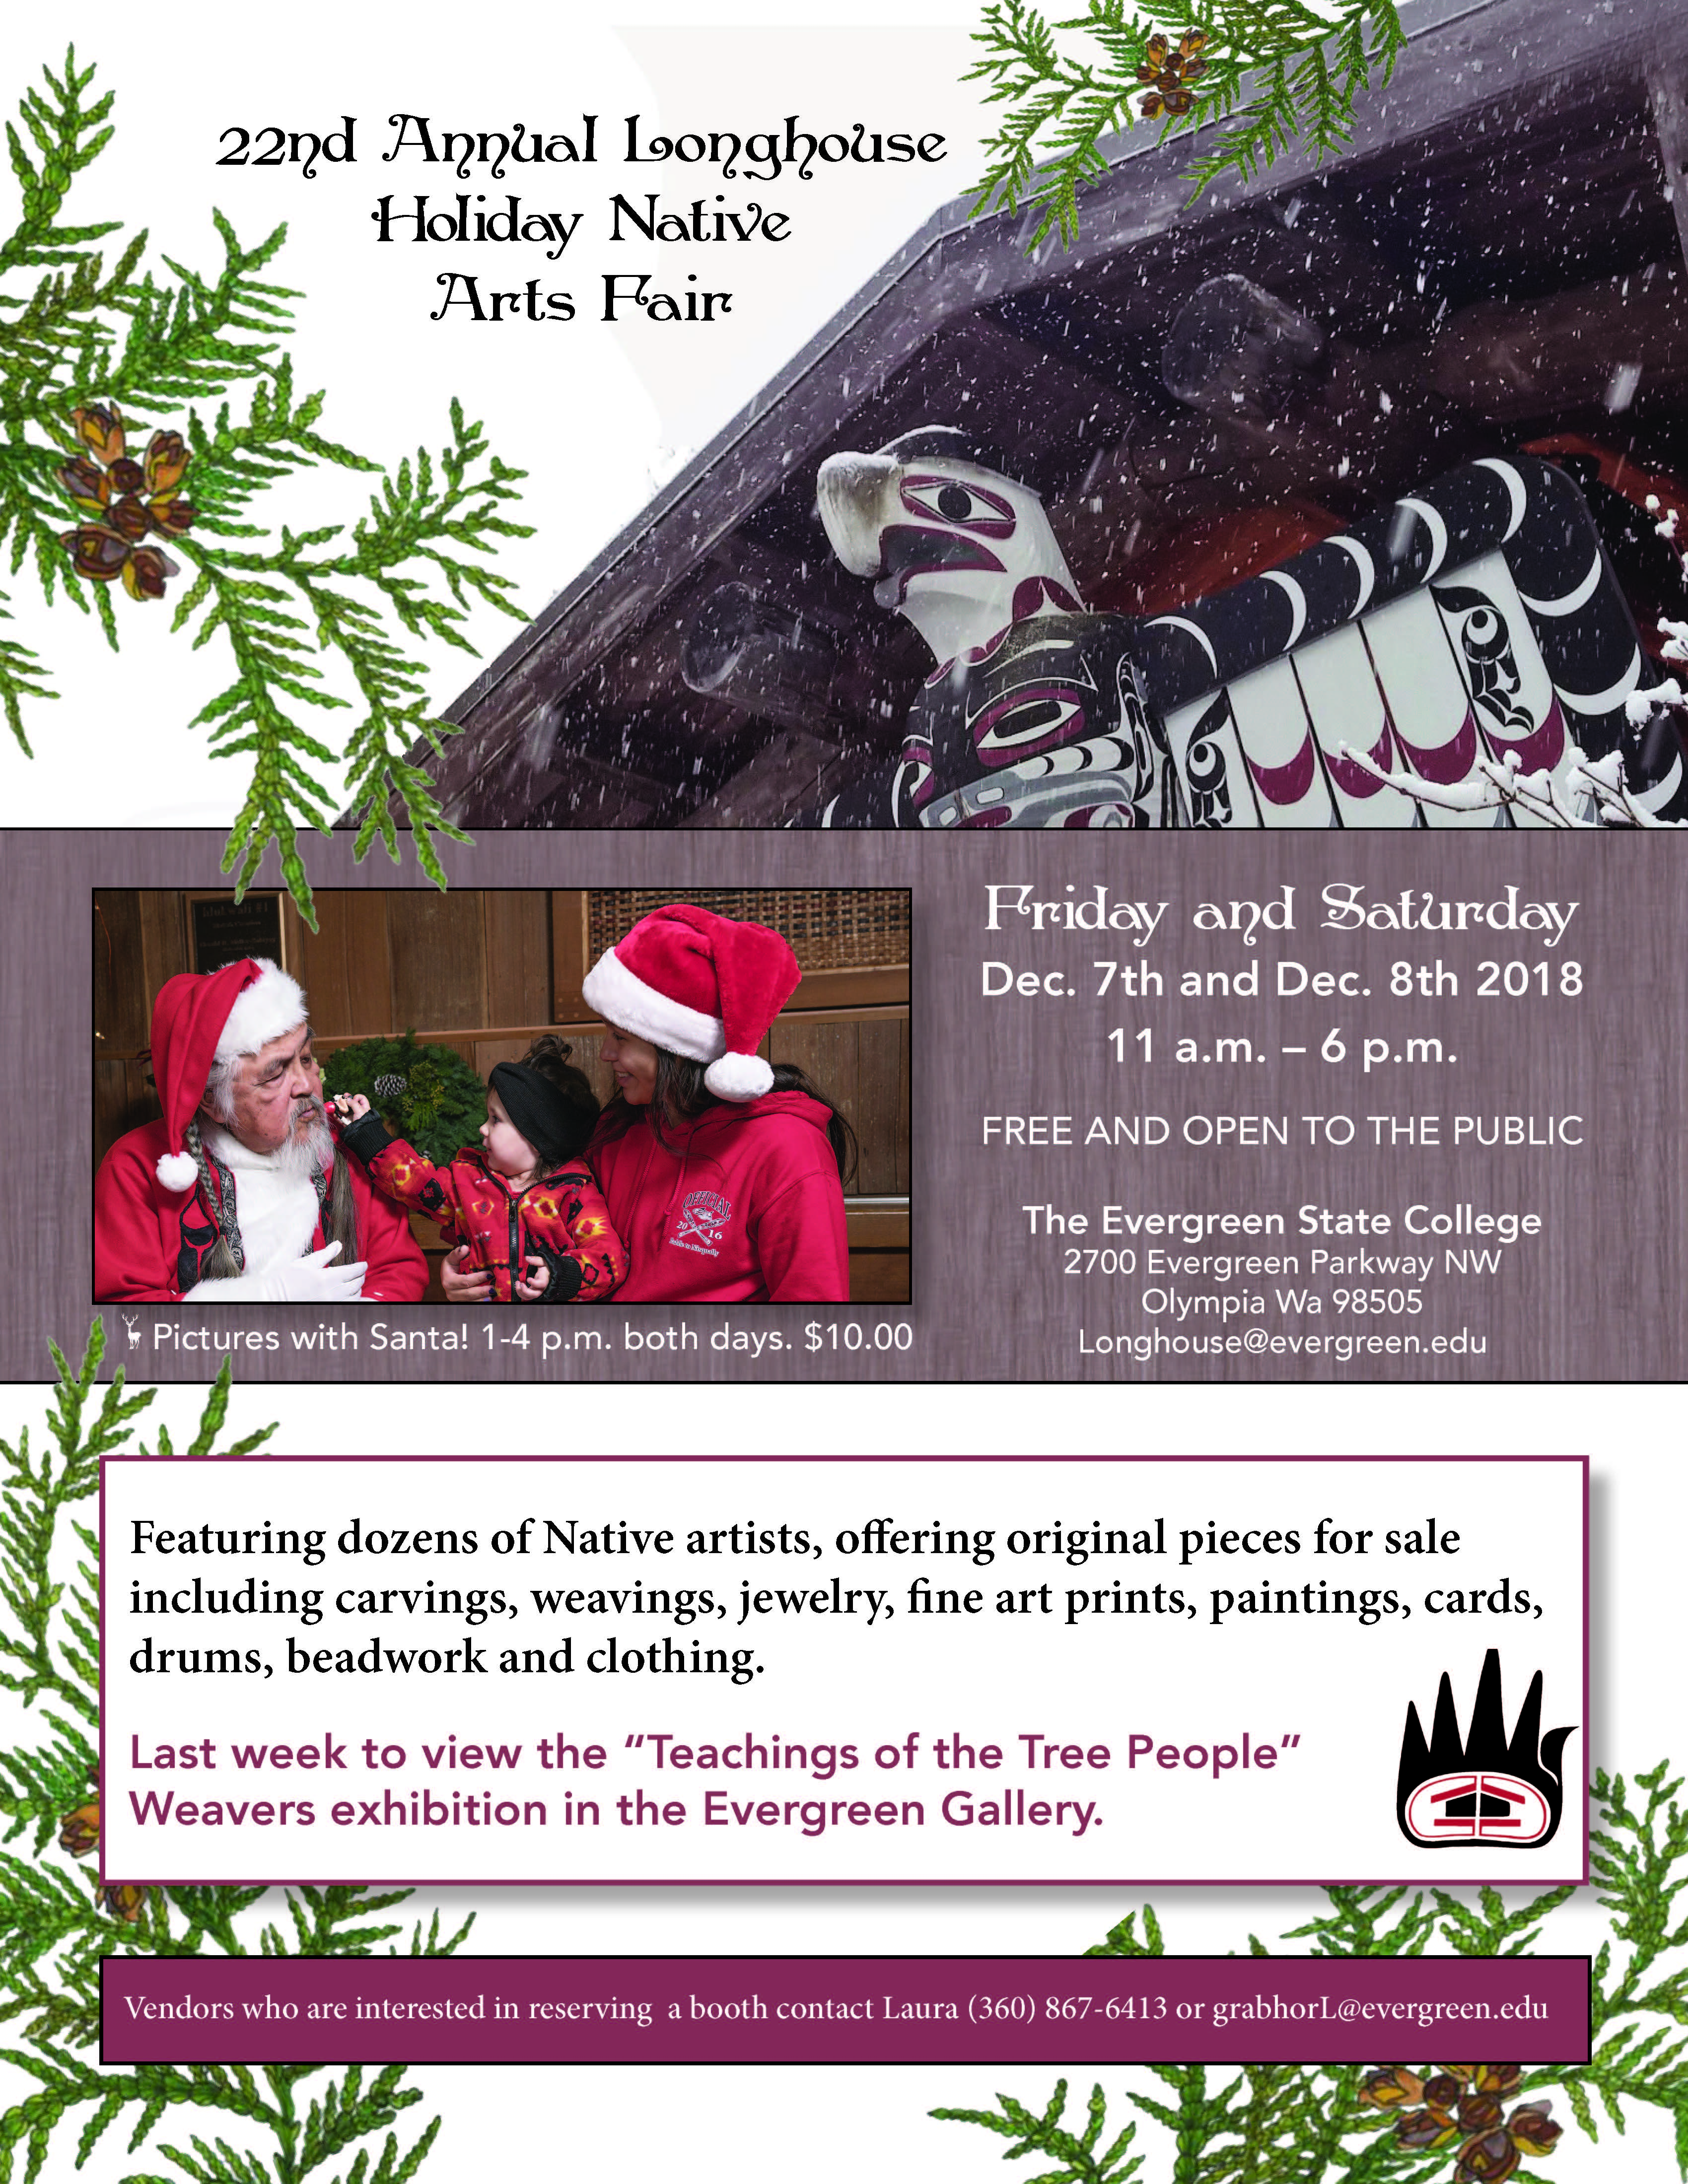 2018 Holiday Native Arts Fair flyer (December 7-8 at the Longhouse)